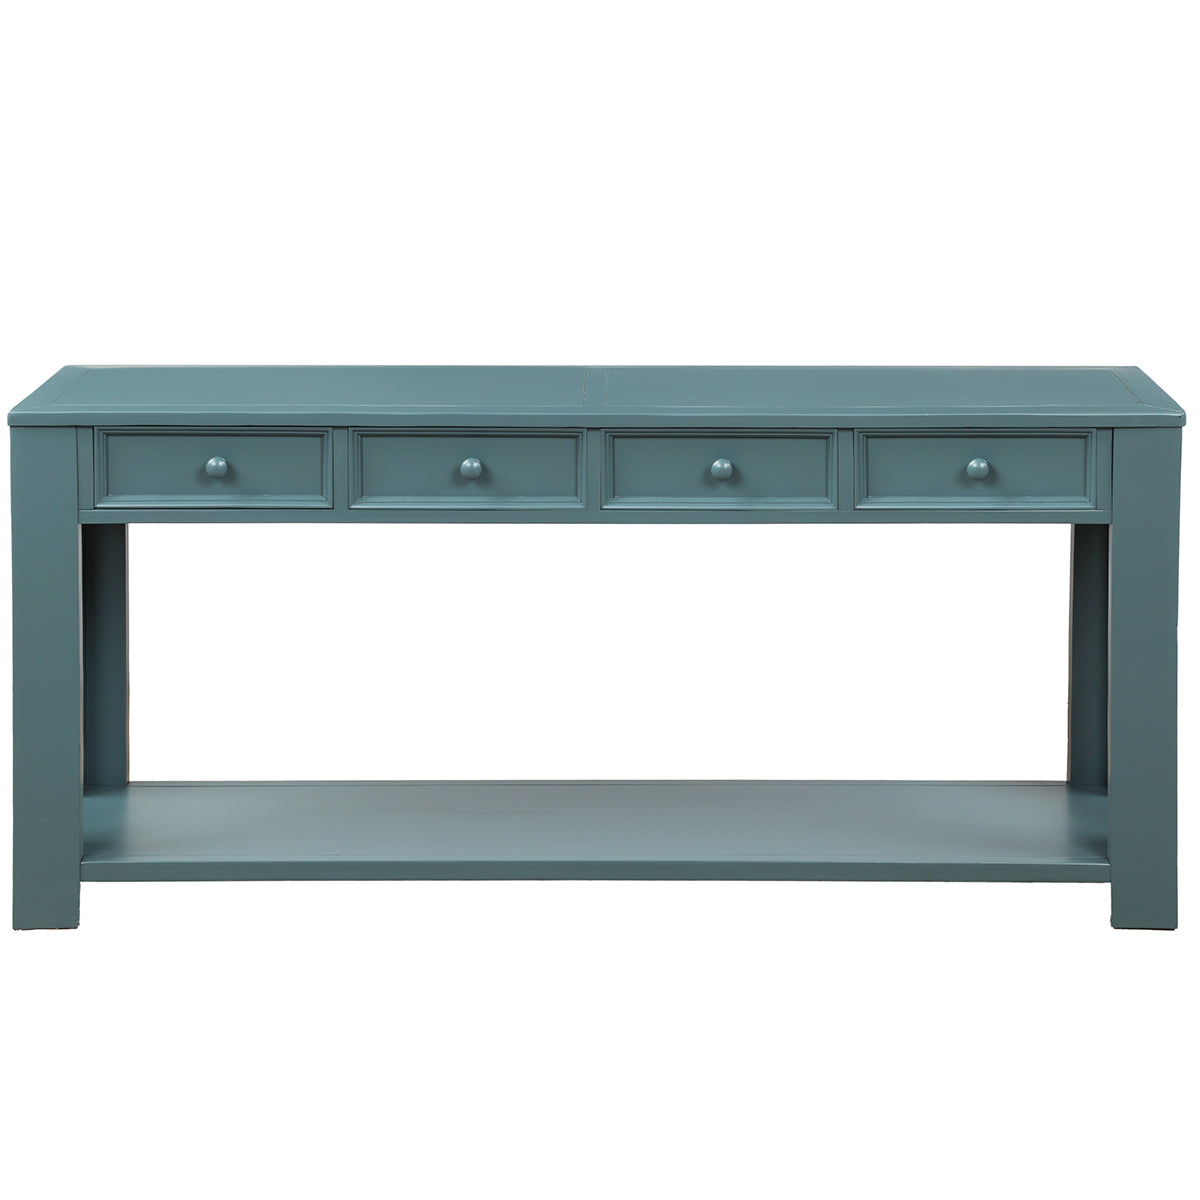 Light Slate Gray Rectangular Console Table for Entryway Hallway Sofa Table with Storage Drawers and Bottom Shelf BH189615